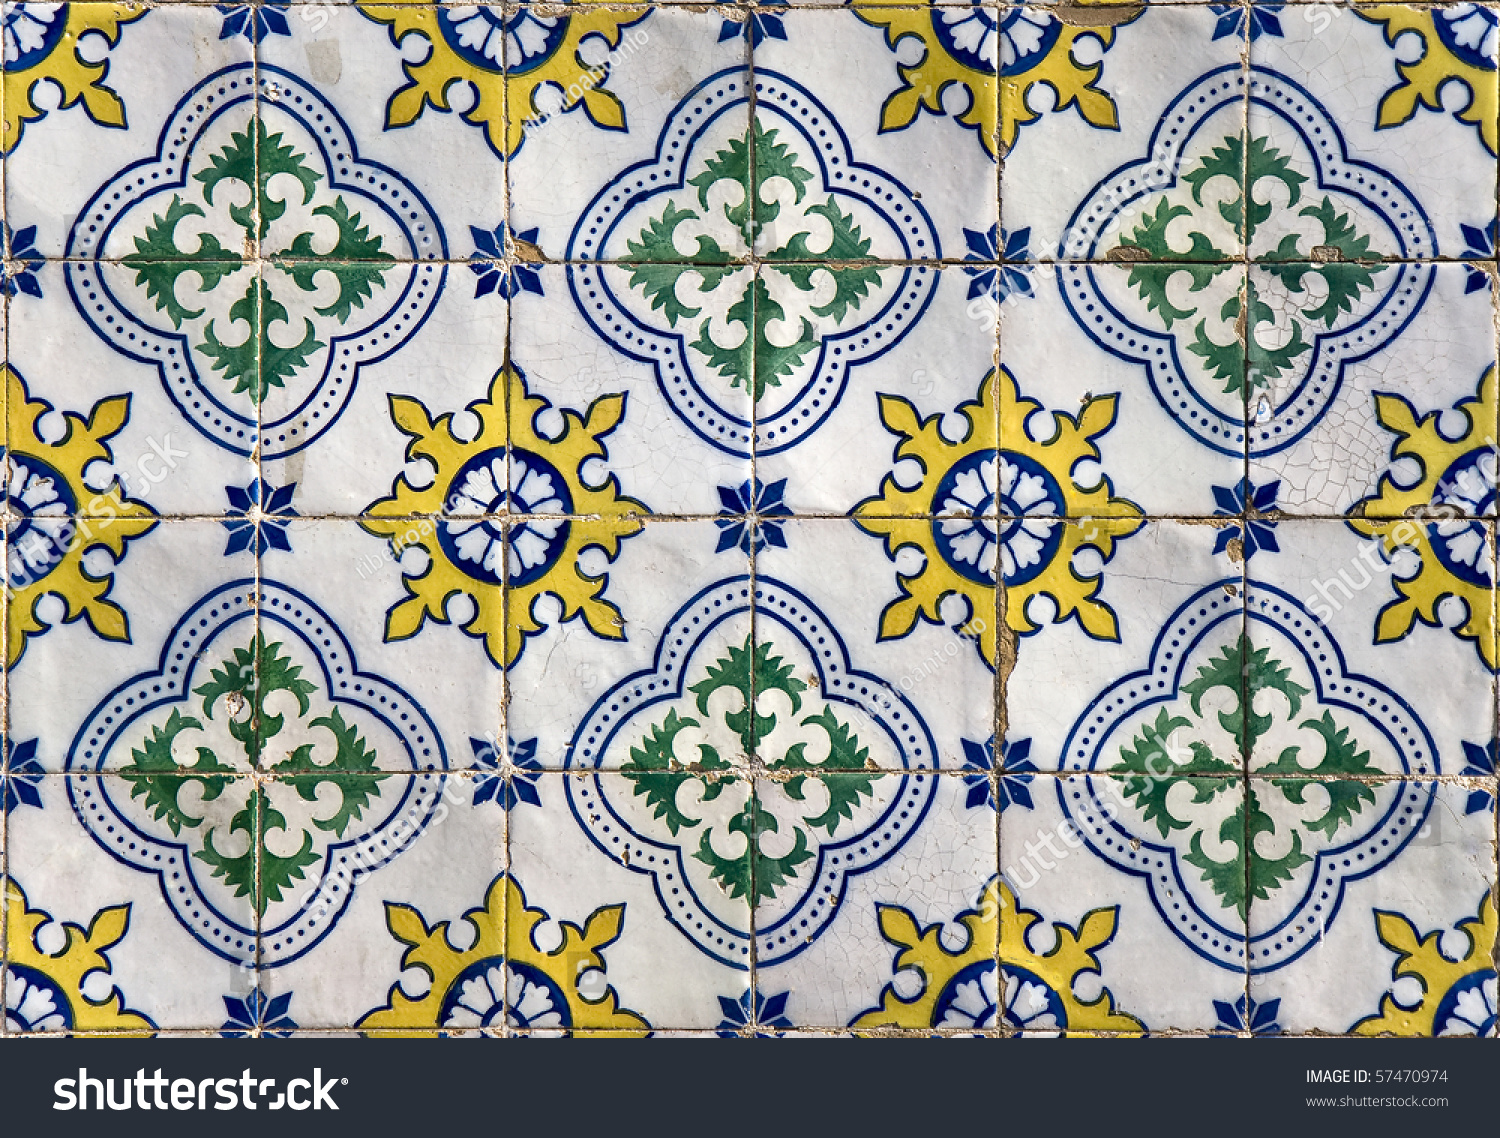 traditional colored decorative tiles covering many buildings in lisbon portugal - Decorative Tiles